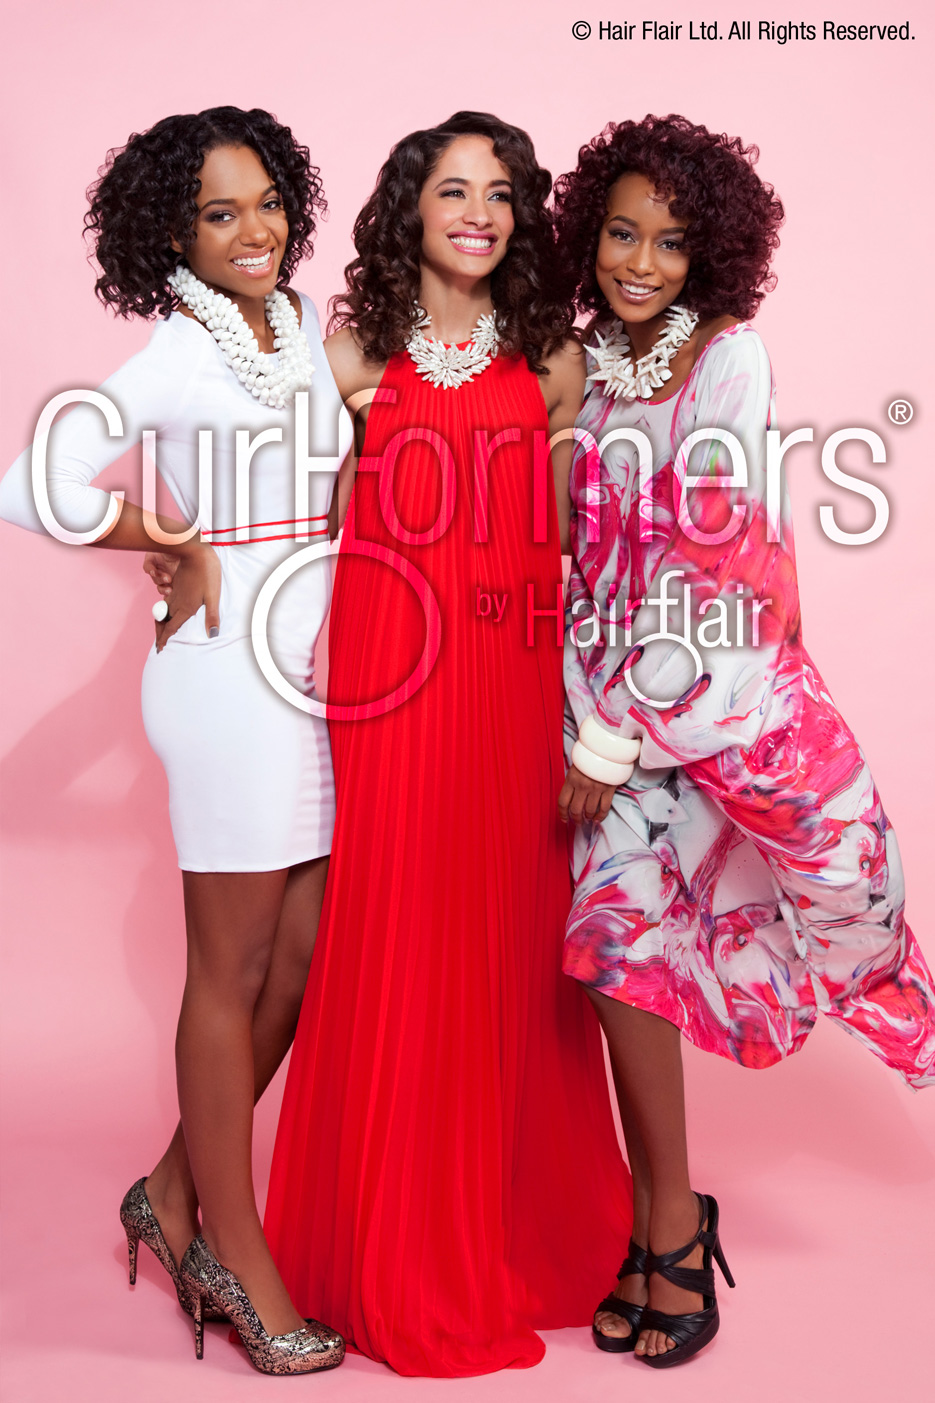 Black hair Magazine Curlformers Cover April May 2013 Fashion stylist Erica Matthews